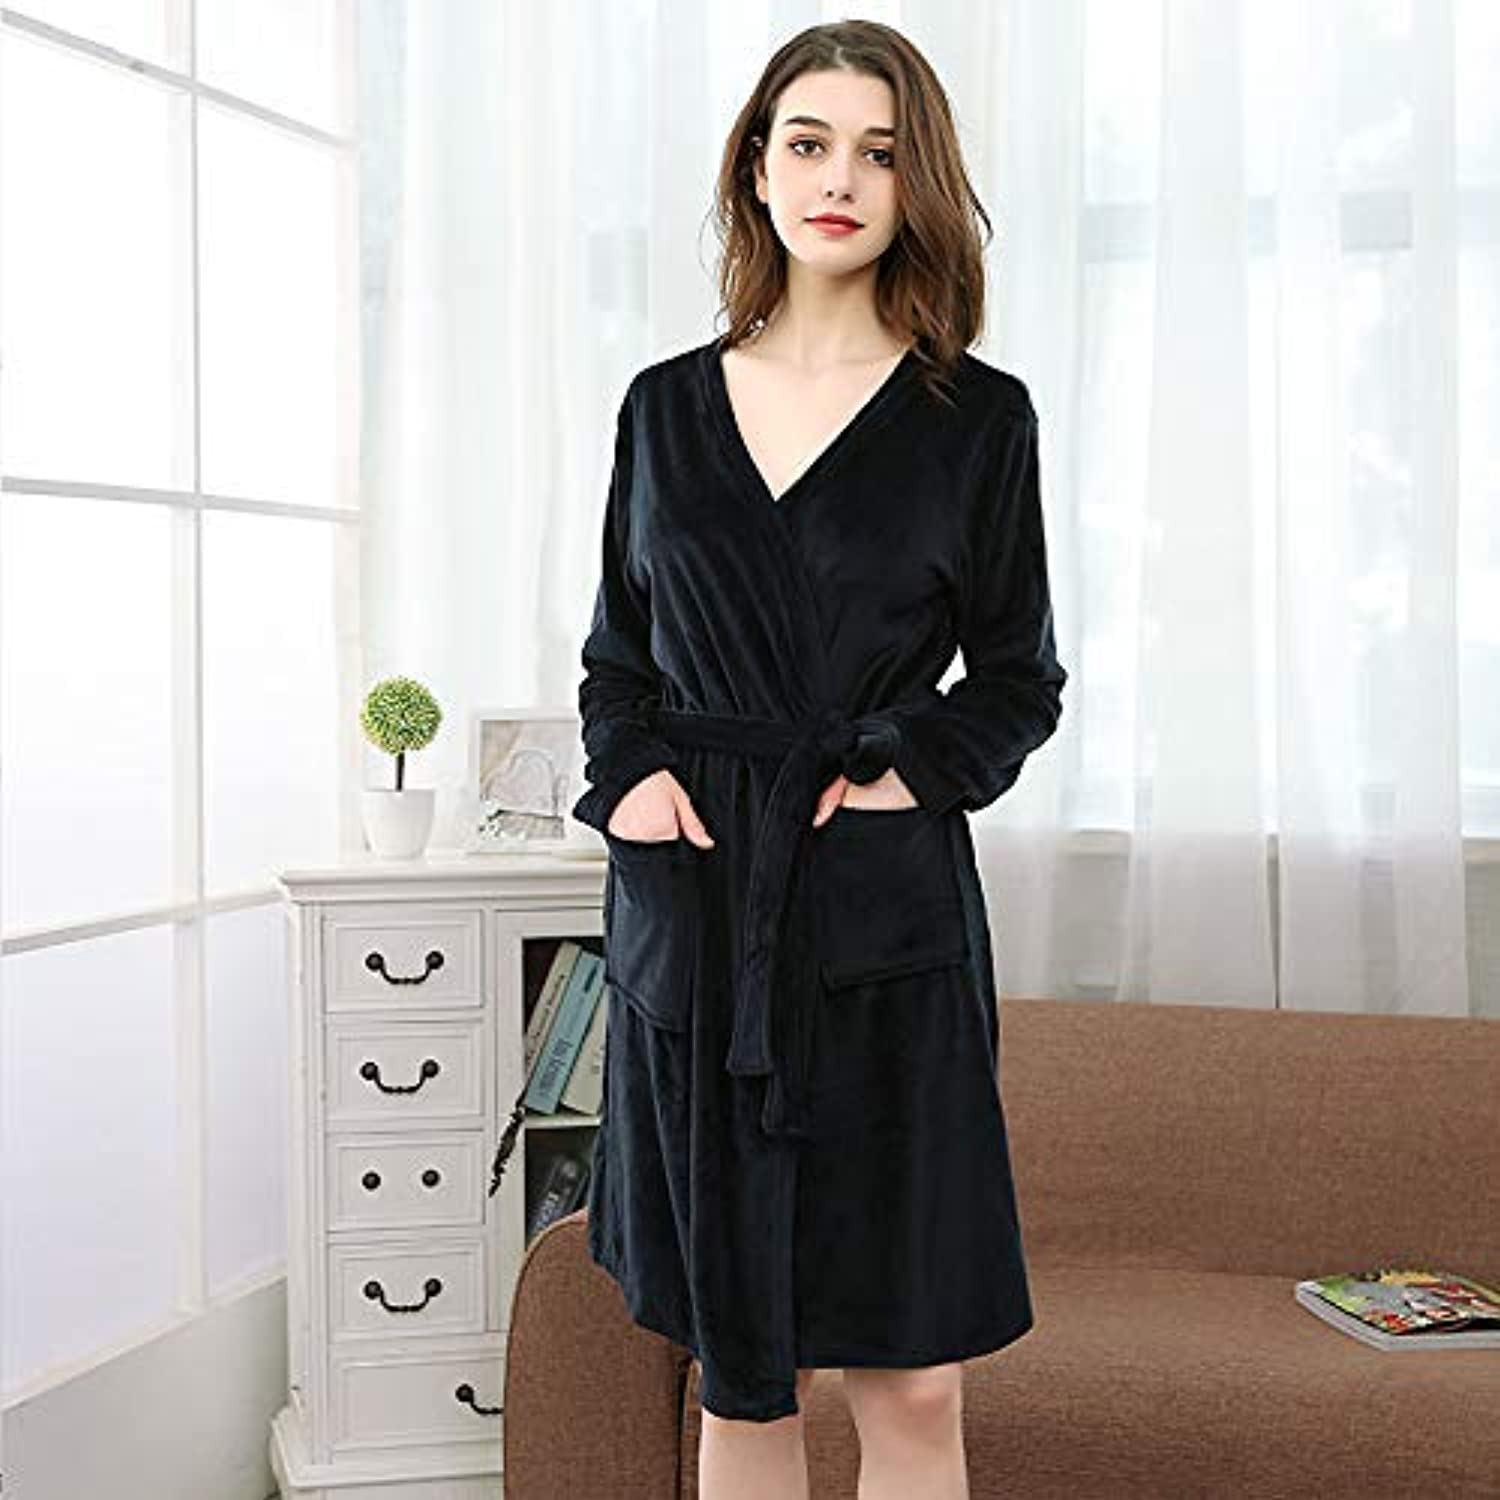 Cute Pajamas Summer Pajamas Women's Soft Comfortable Island Velvet Bathrobe Cardigan Long Sleeve Absorbent Couple Nightgown (color   Navy) Sexy Sleepwear (color   Navy)